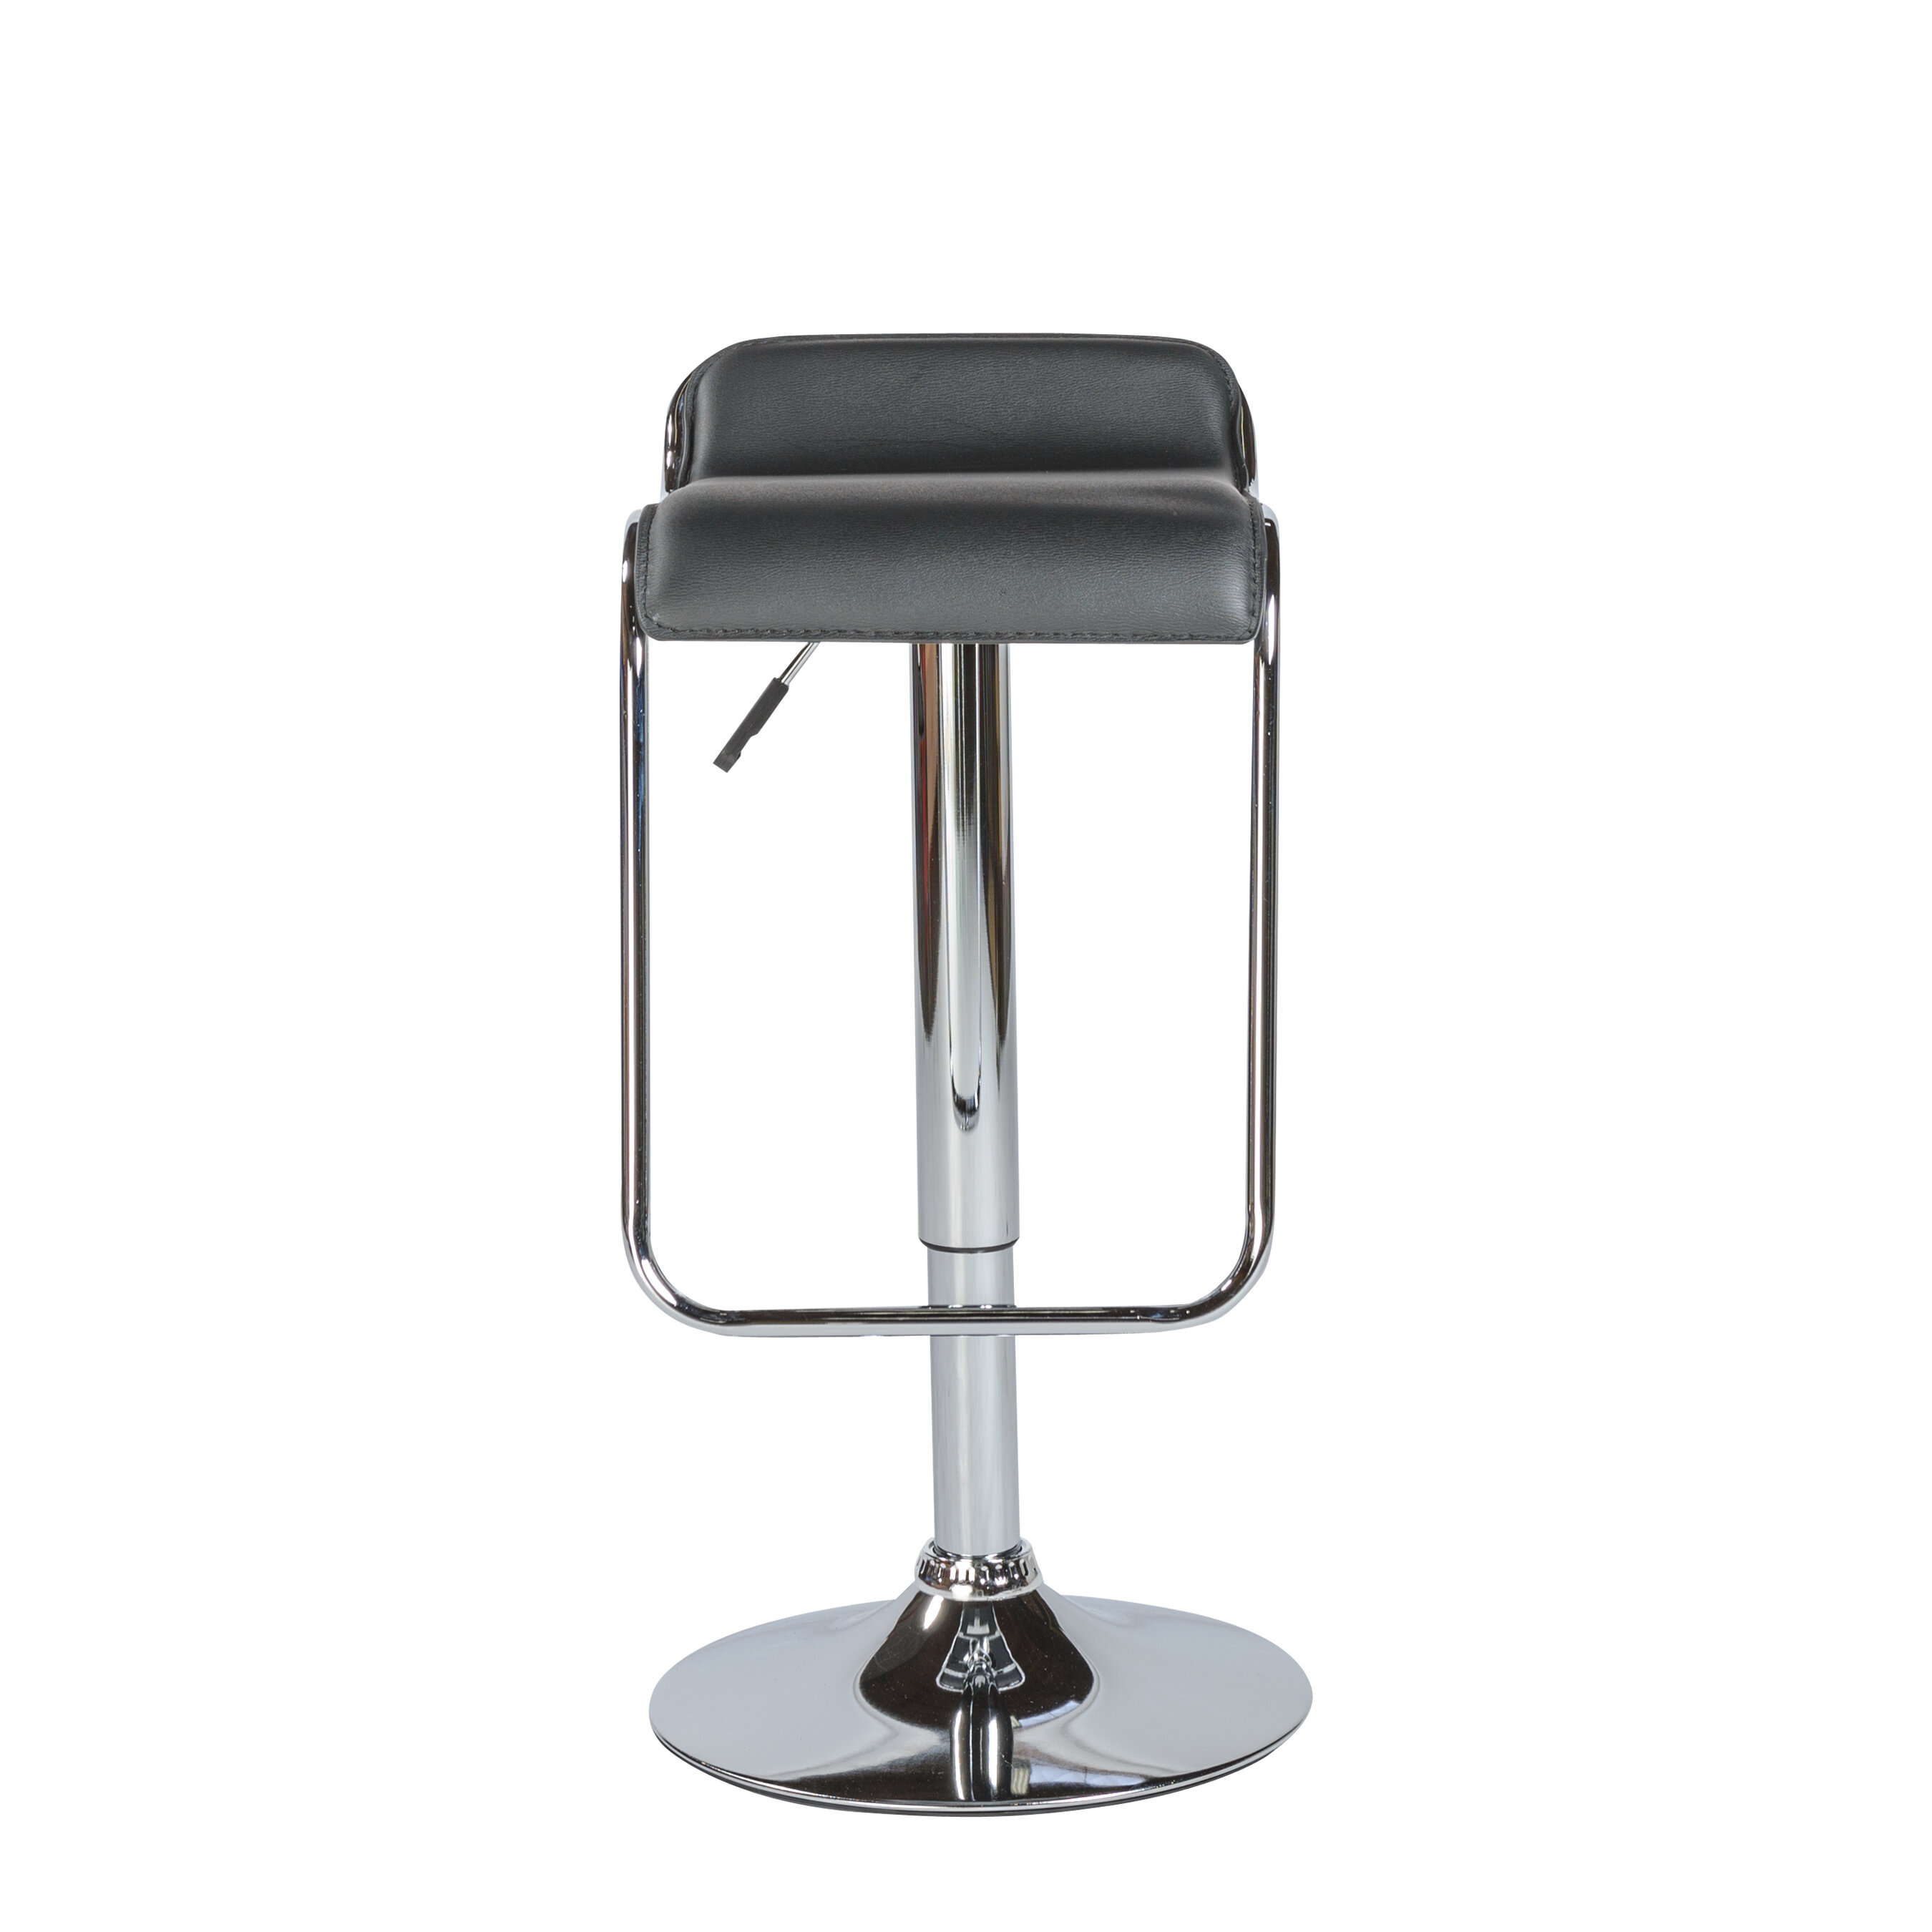 Tremendous Kinton Adjustable Height Swivel Bar Stool Caraccident5 Cool Chair Designs And Ideas Caraccident5Info